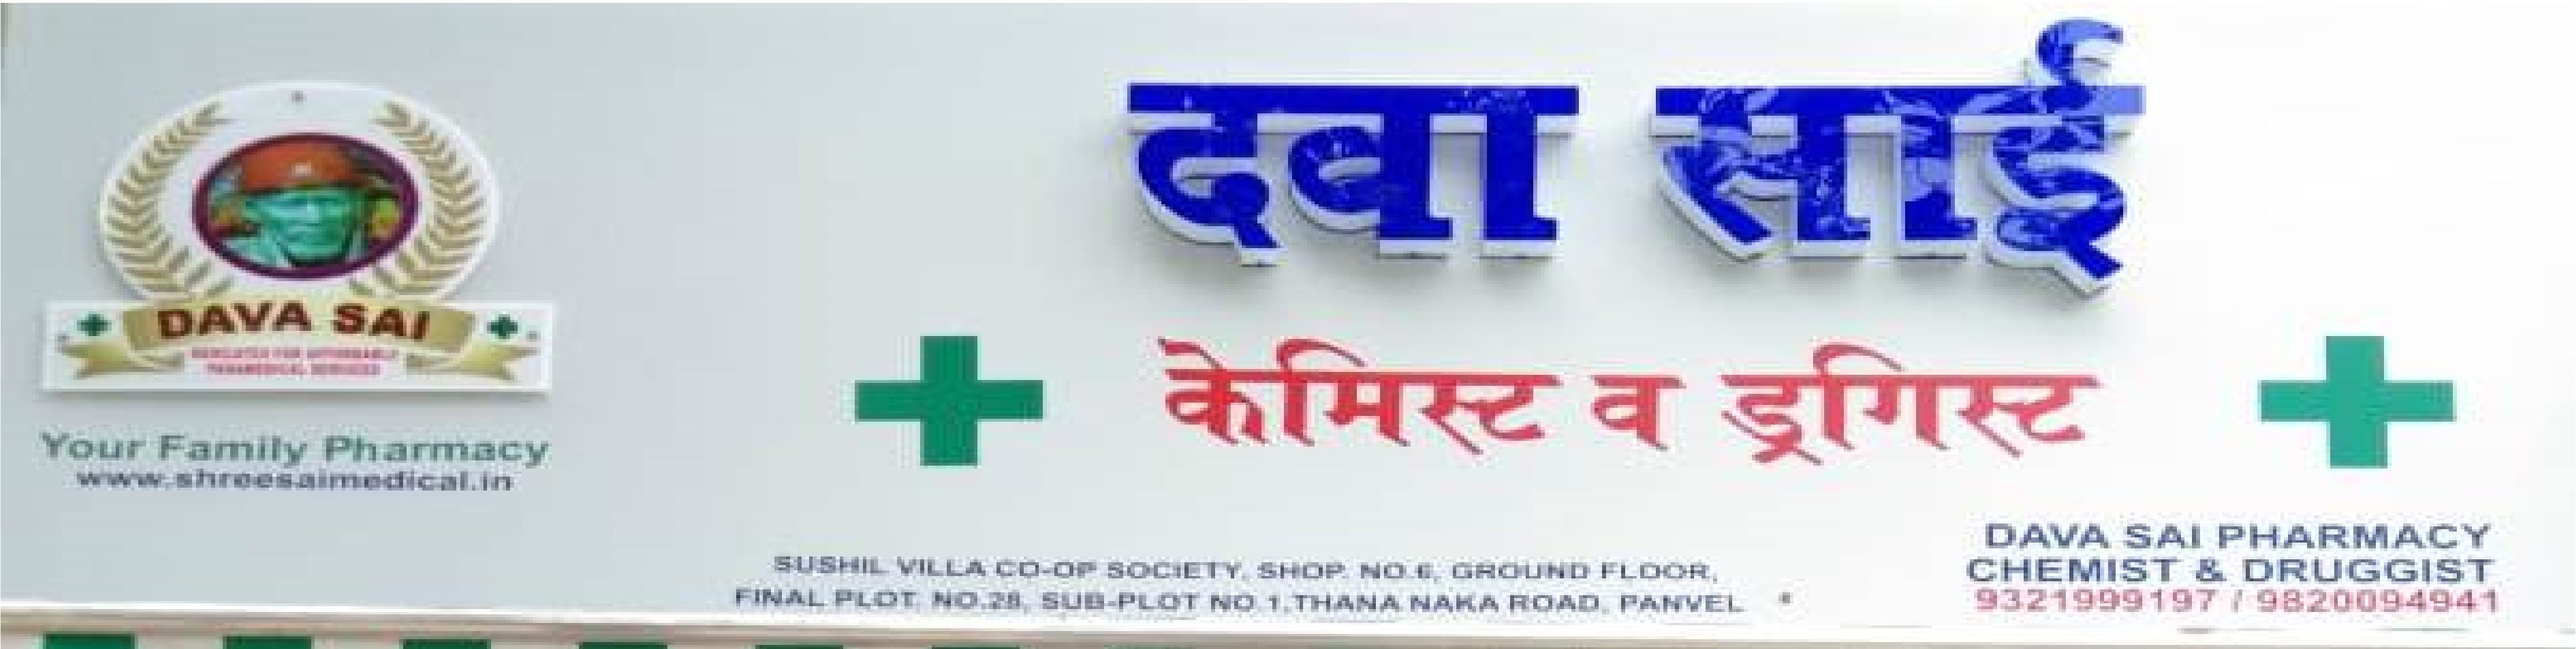 list ayurvedic medical shops in mumbai